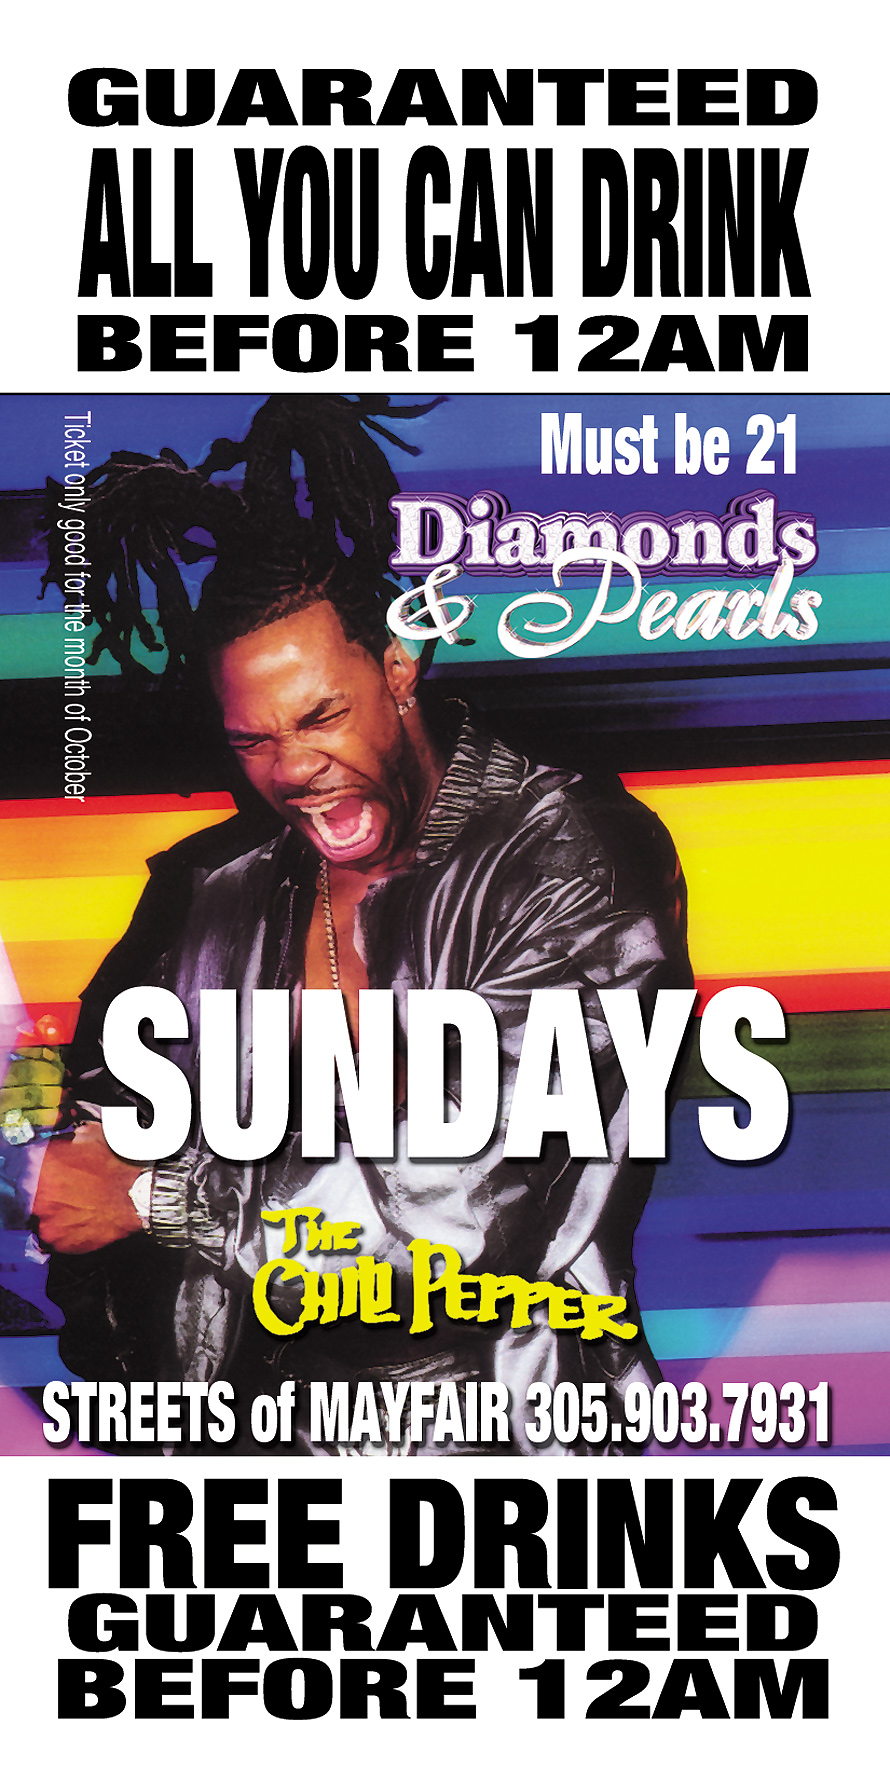 Diamonds and Pearls Sundays at The Chili Pepper